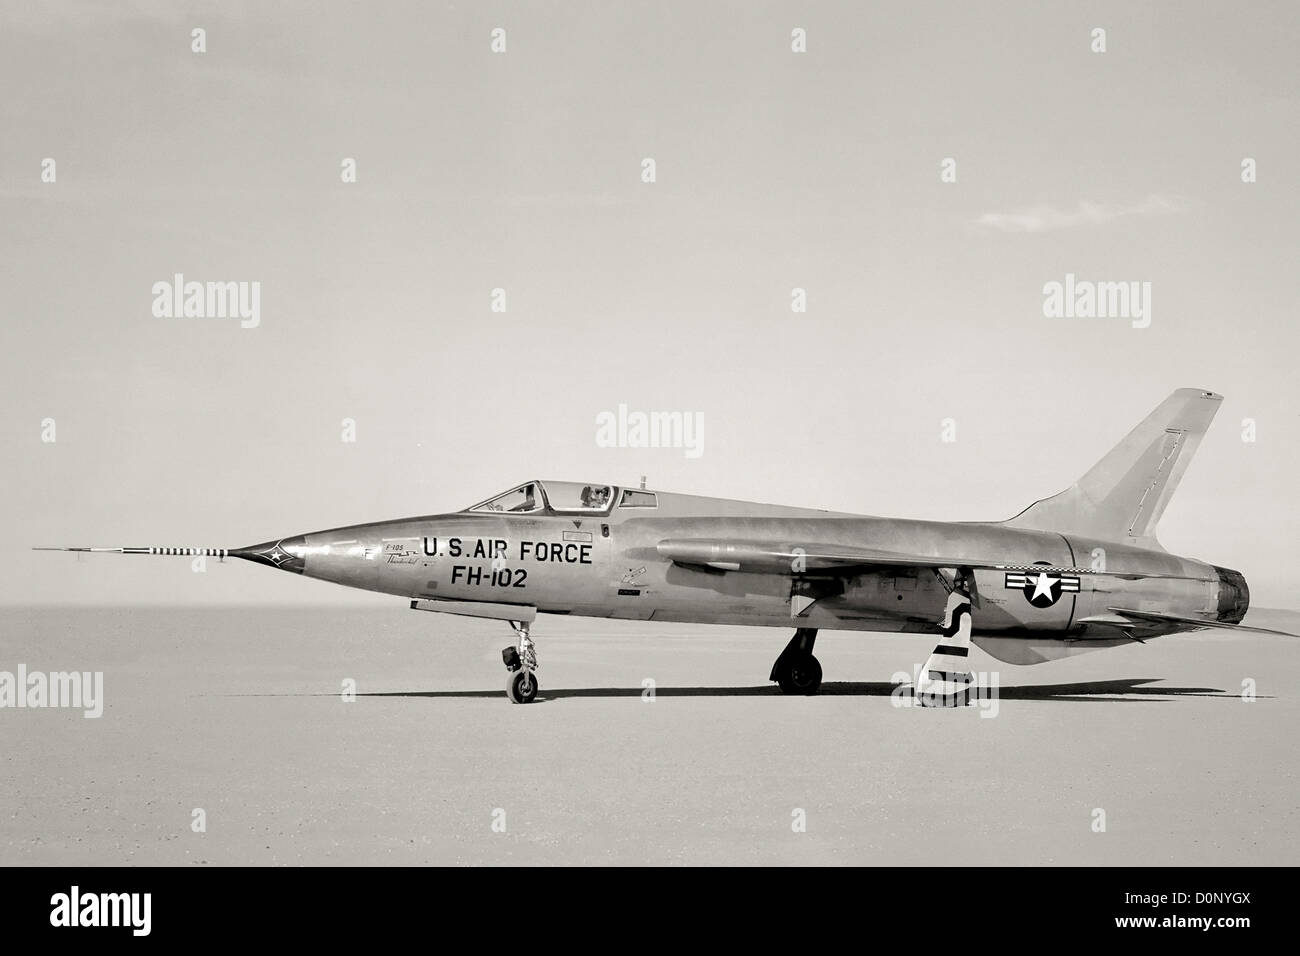 F-105 on Rogers Dry Lake - Stock Image